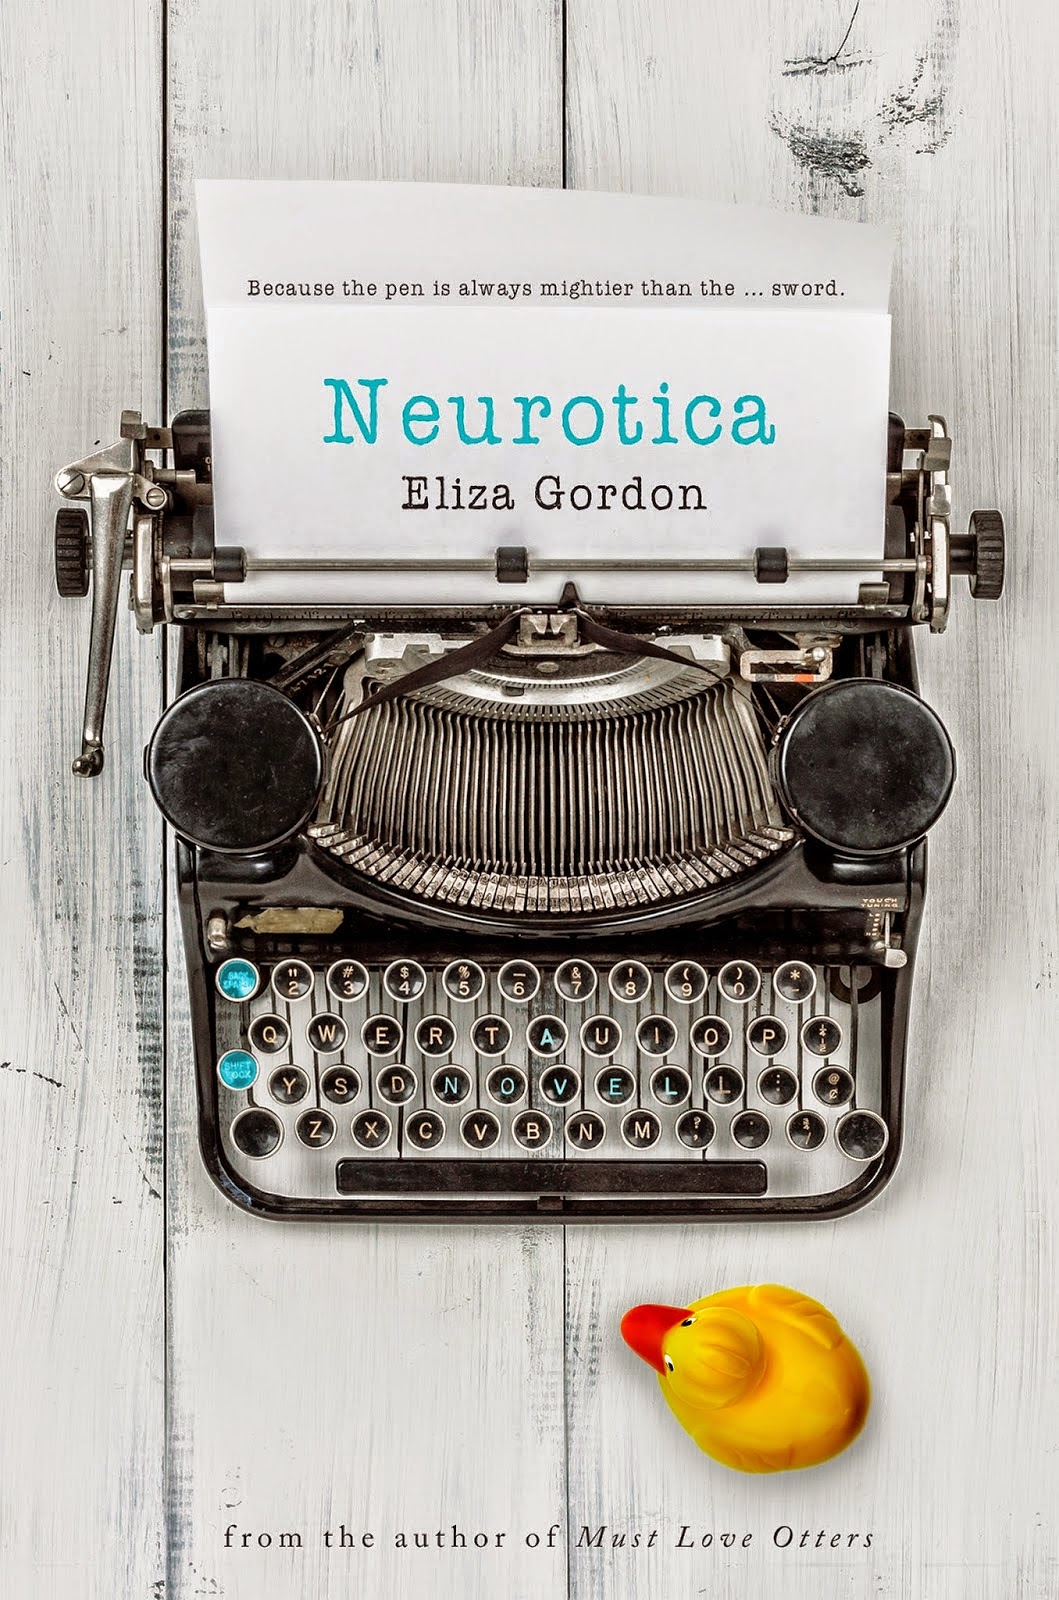 https://www.goodreads.com/book/show/22704194-neurotica?from_search=true